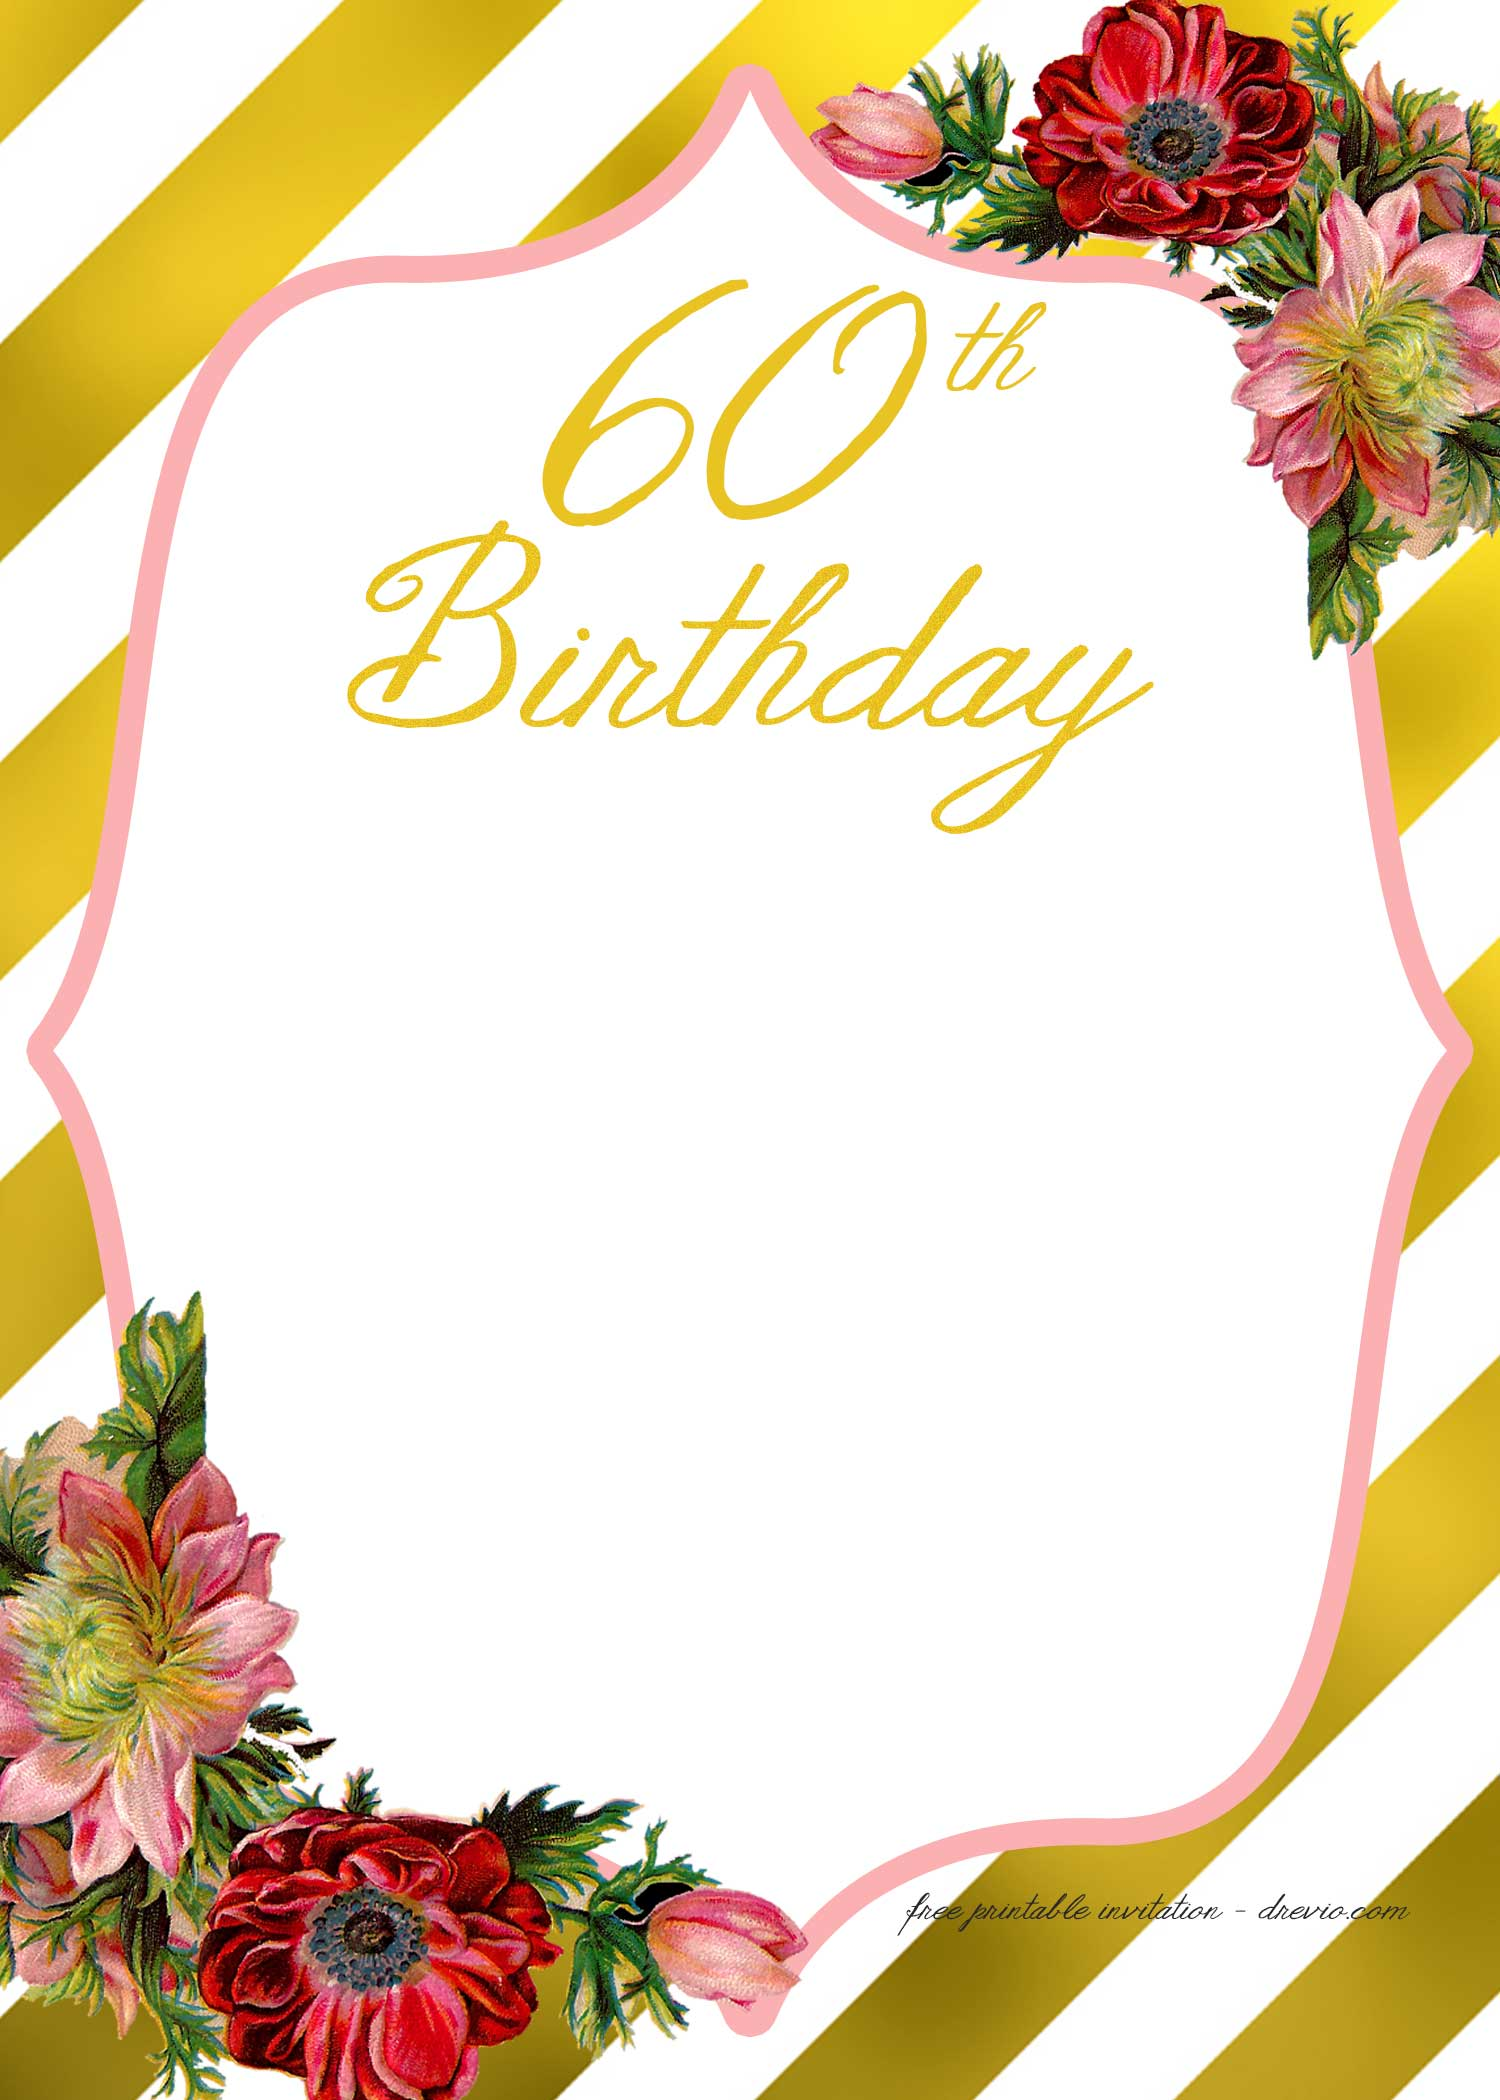 It's just an image of Punchy Free Printable Birthday Invitation Templates